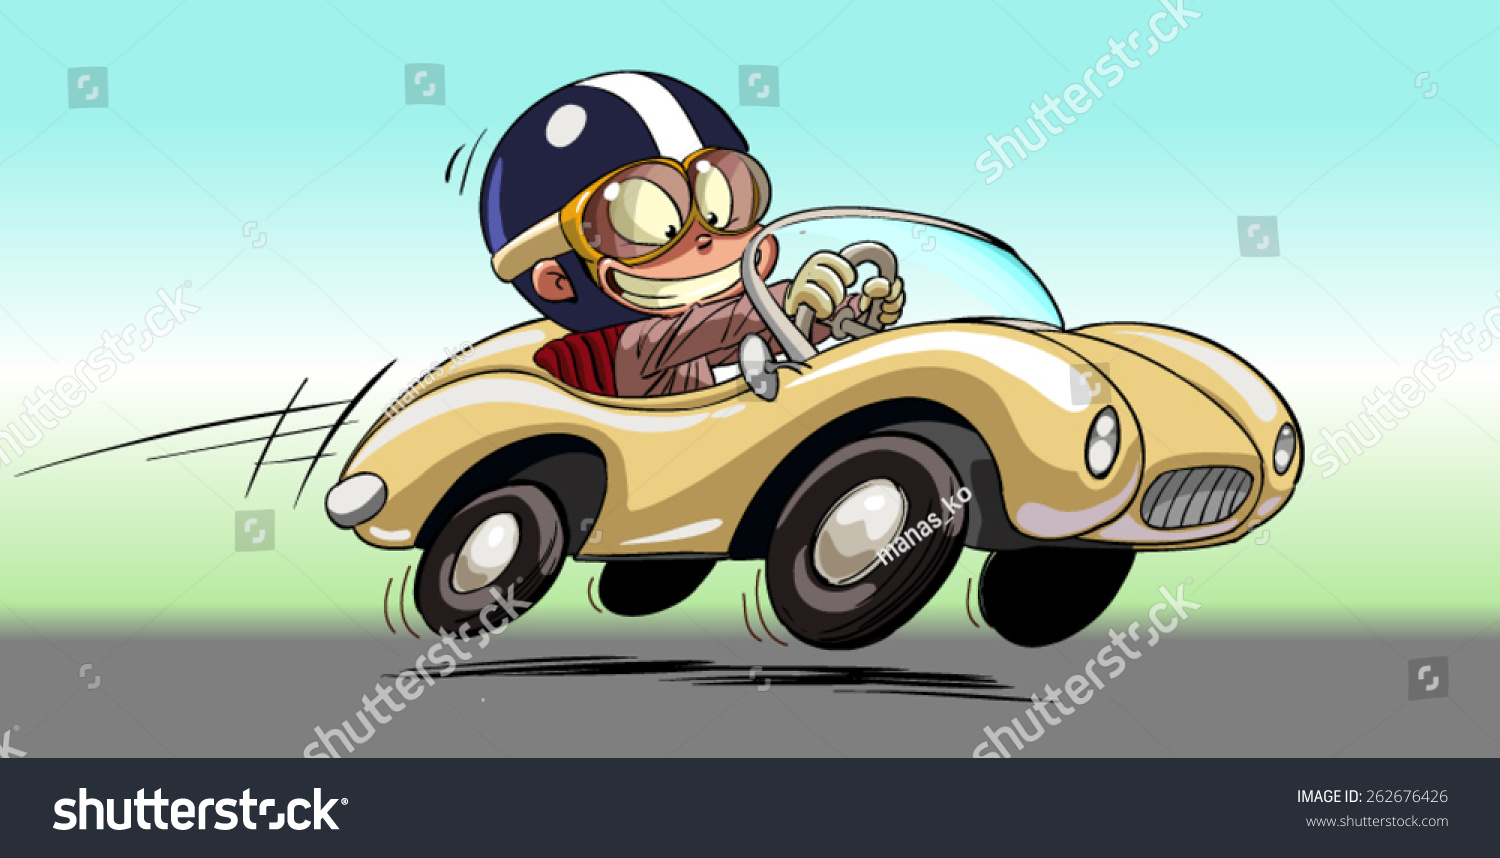 young kid driving race car stock vector 262676426 shutterstock